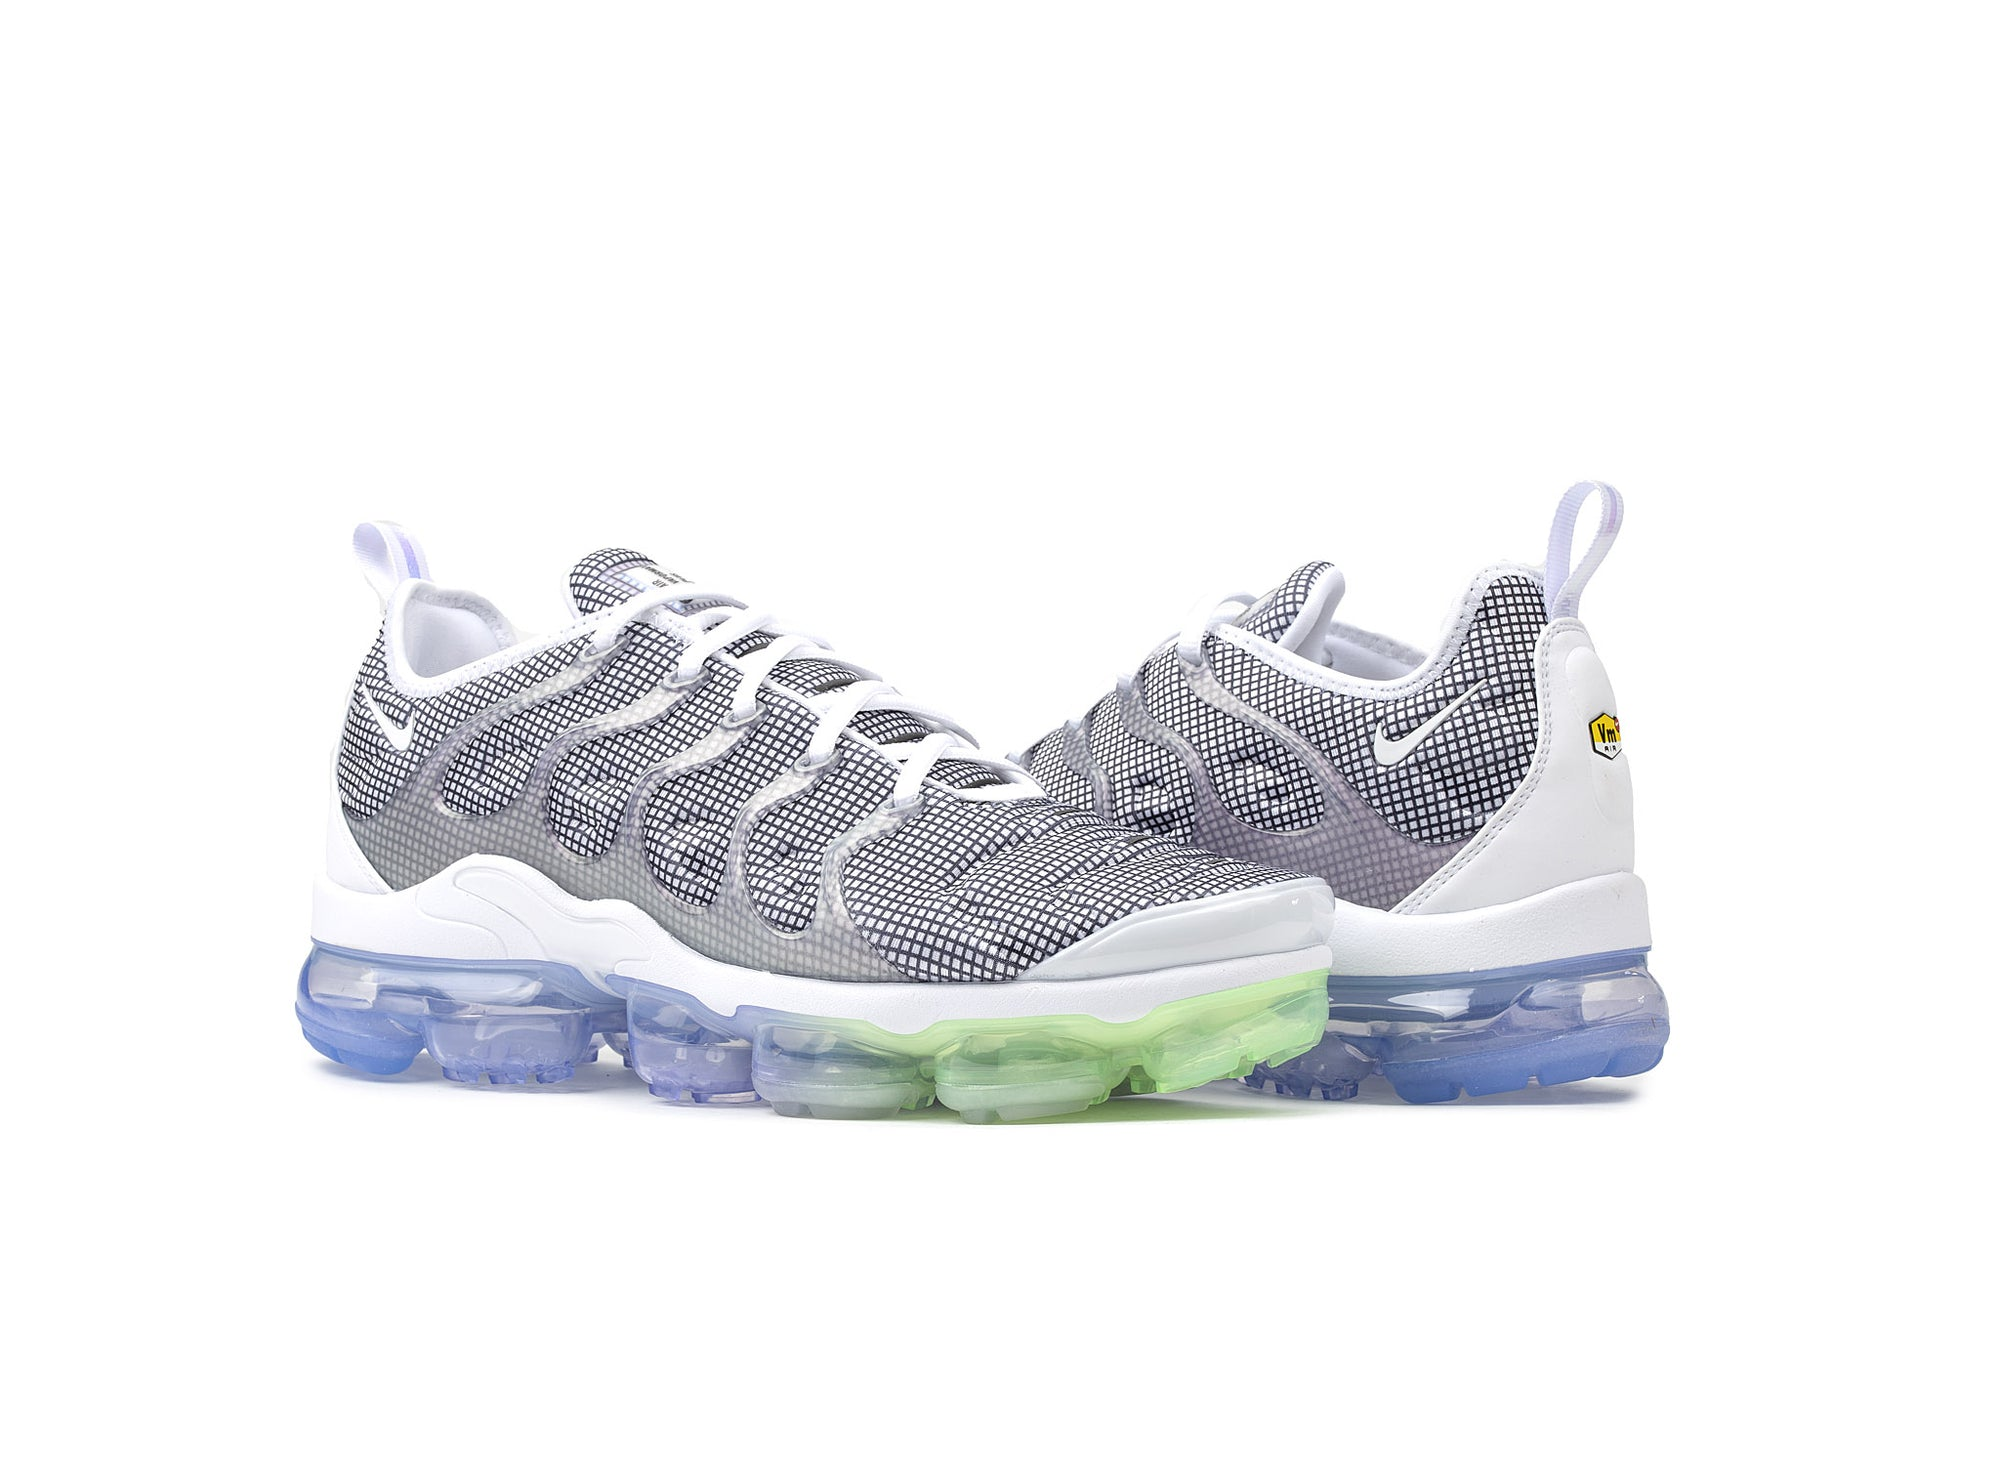 huge selection of 63dc2 1f815 NIKE AIR VAPORMAX PLUS